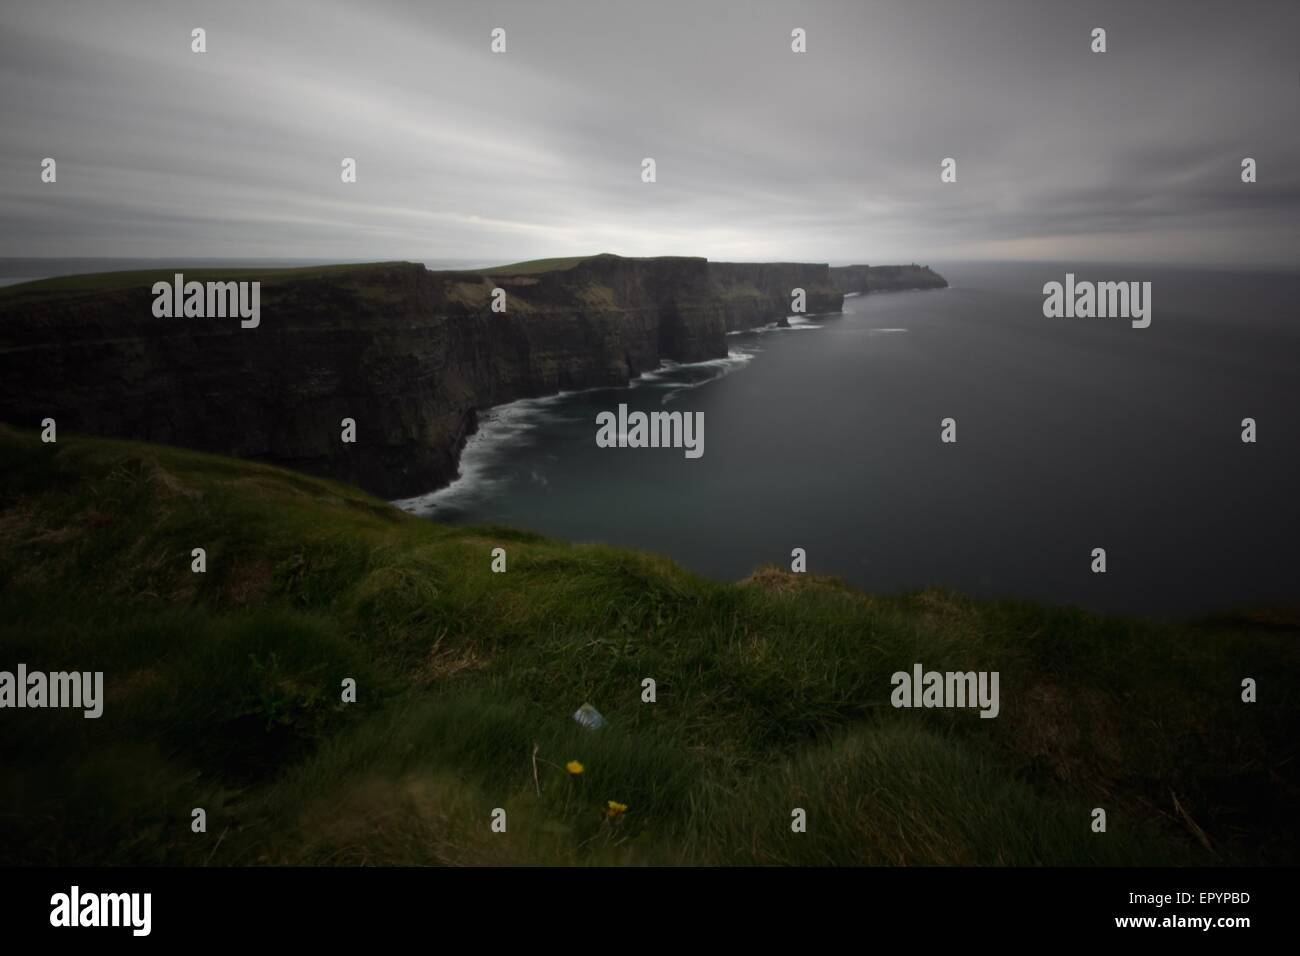 a view of Cliff of Moher,Ireland - Stock Image